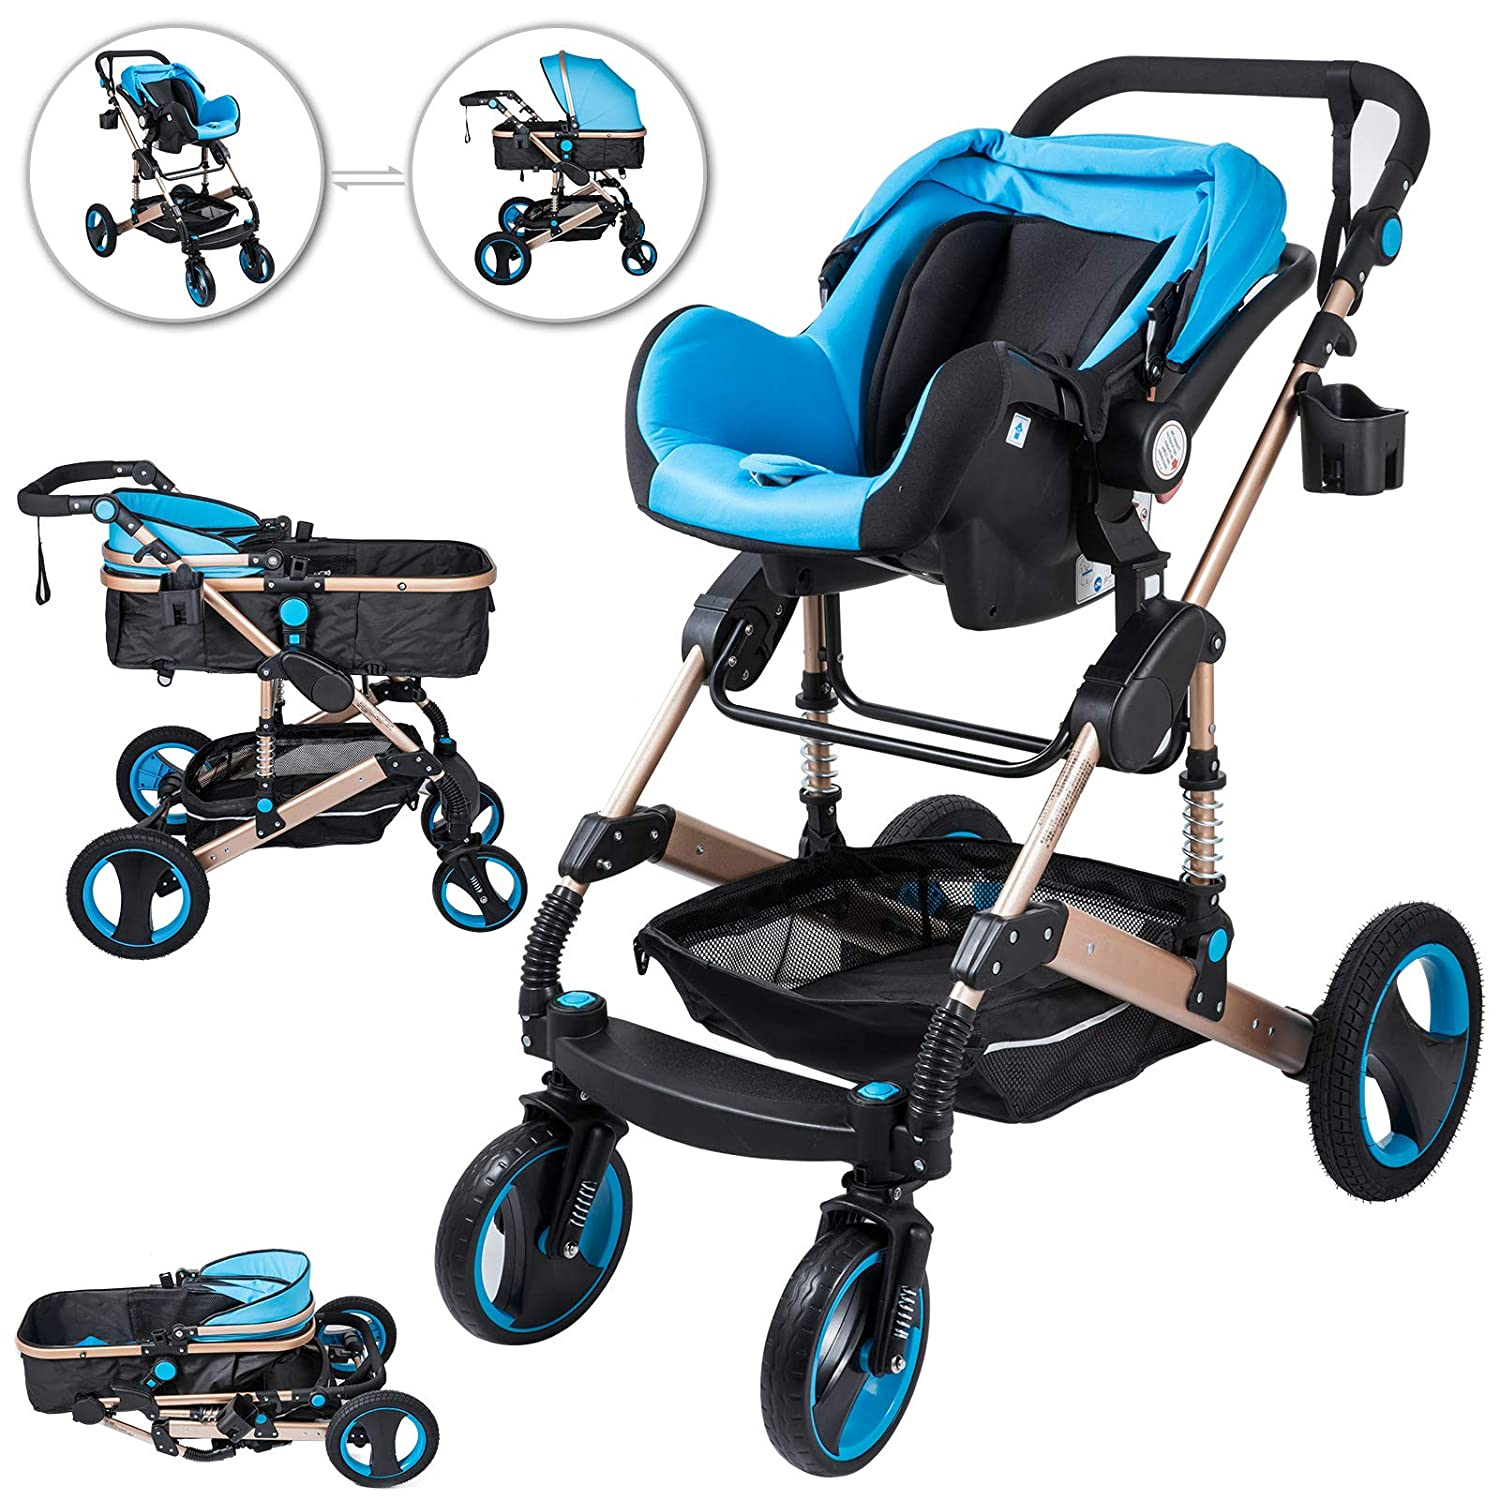 Happybuy 3 in 1 Stroller Blue Foldable Luxury Baby Stroller Anti-Shock Springs High View Pram Baby Stroller 3 in 1 with Baby Basket No Base